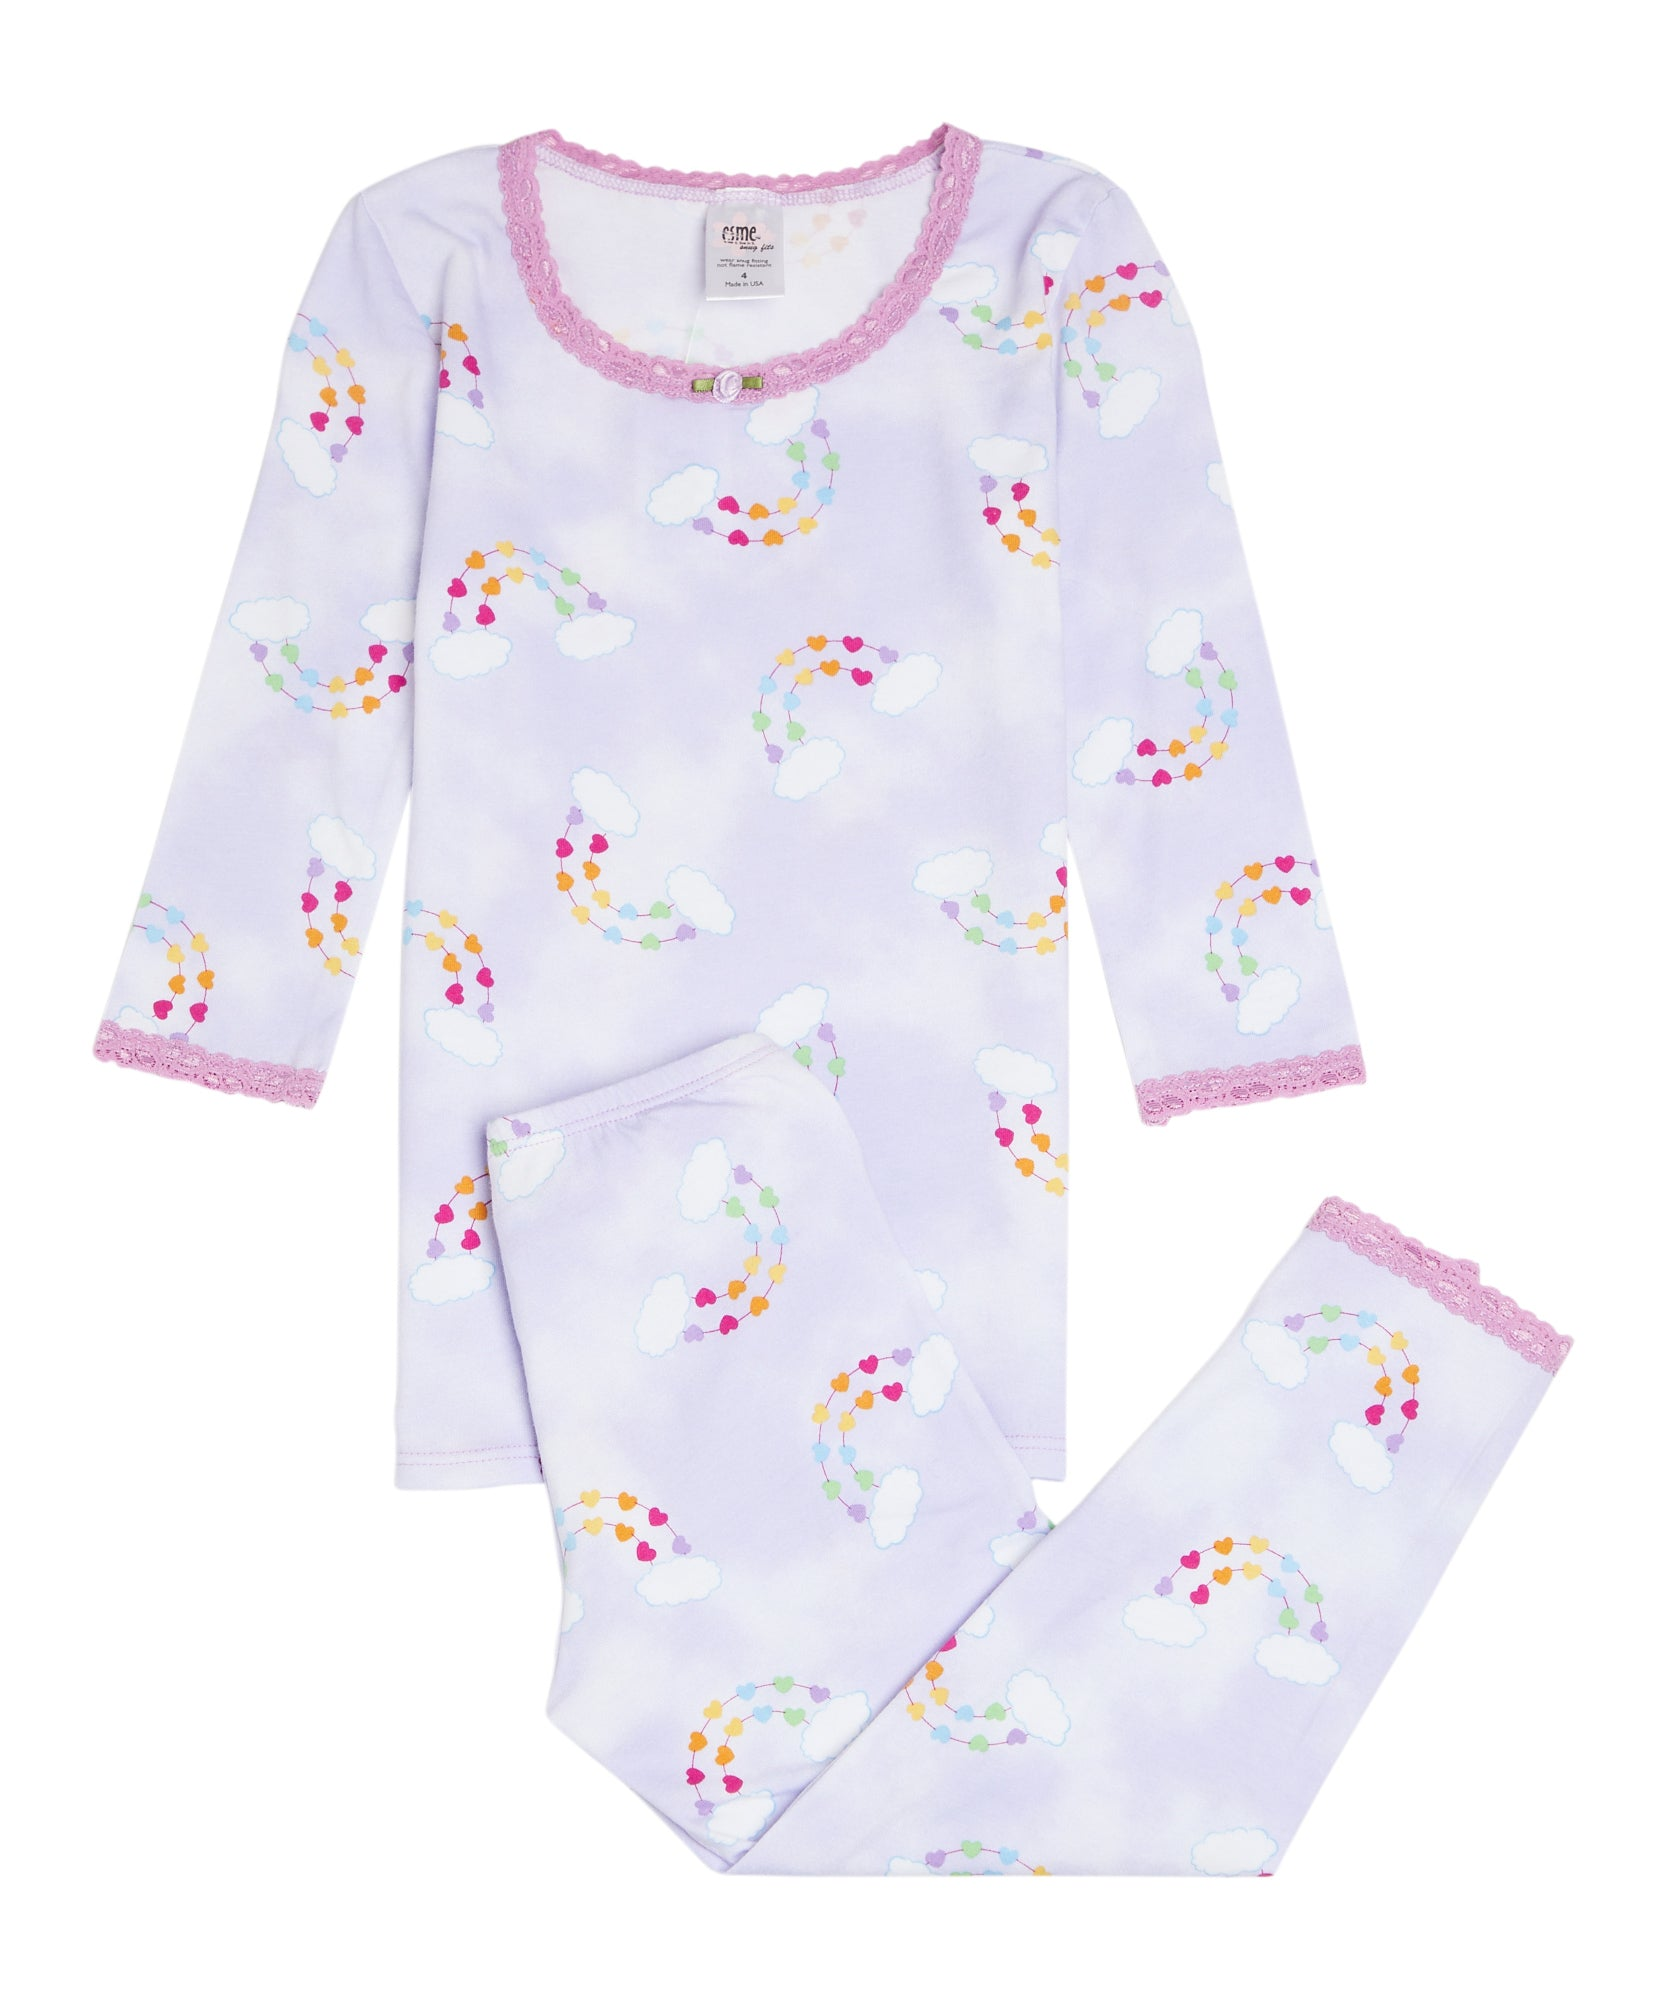 Rainbow Hearts PJ Set